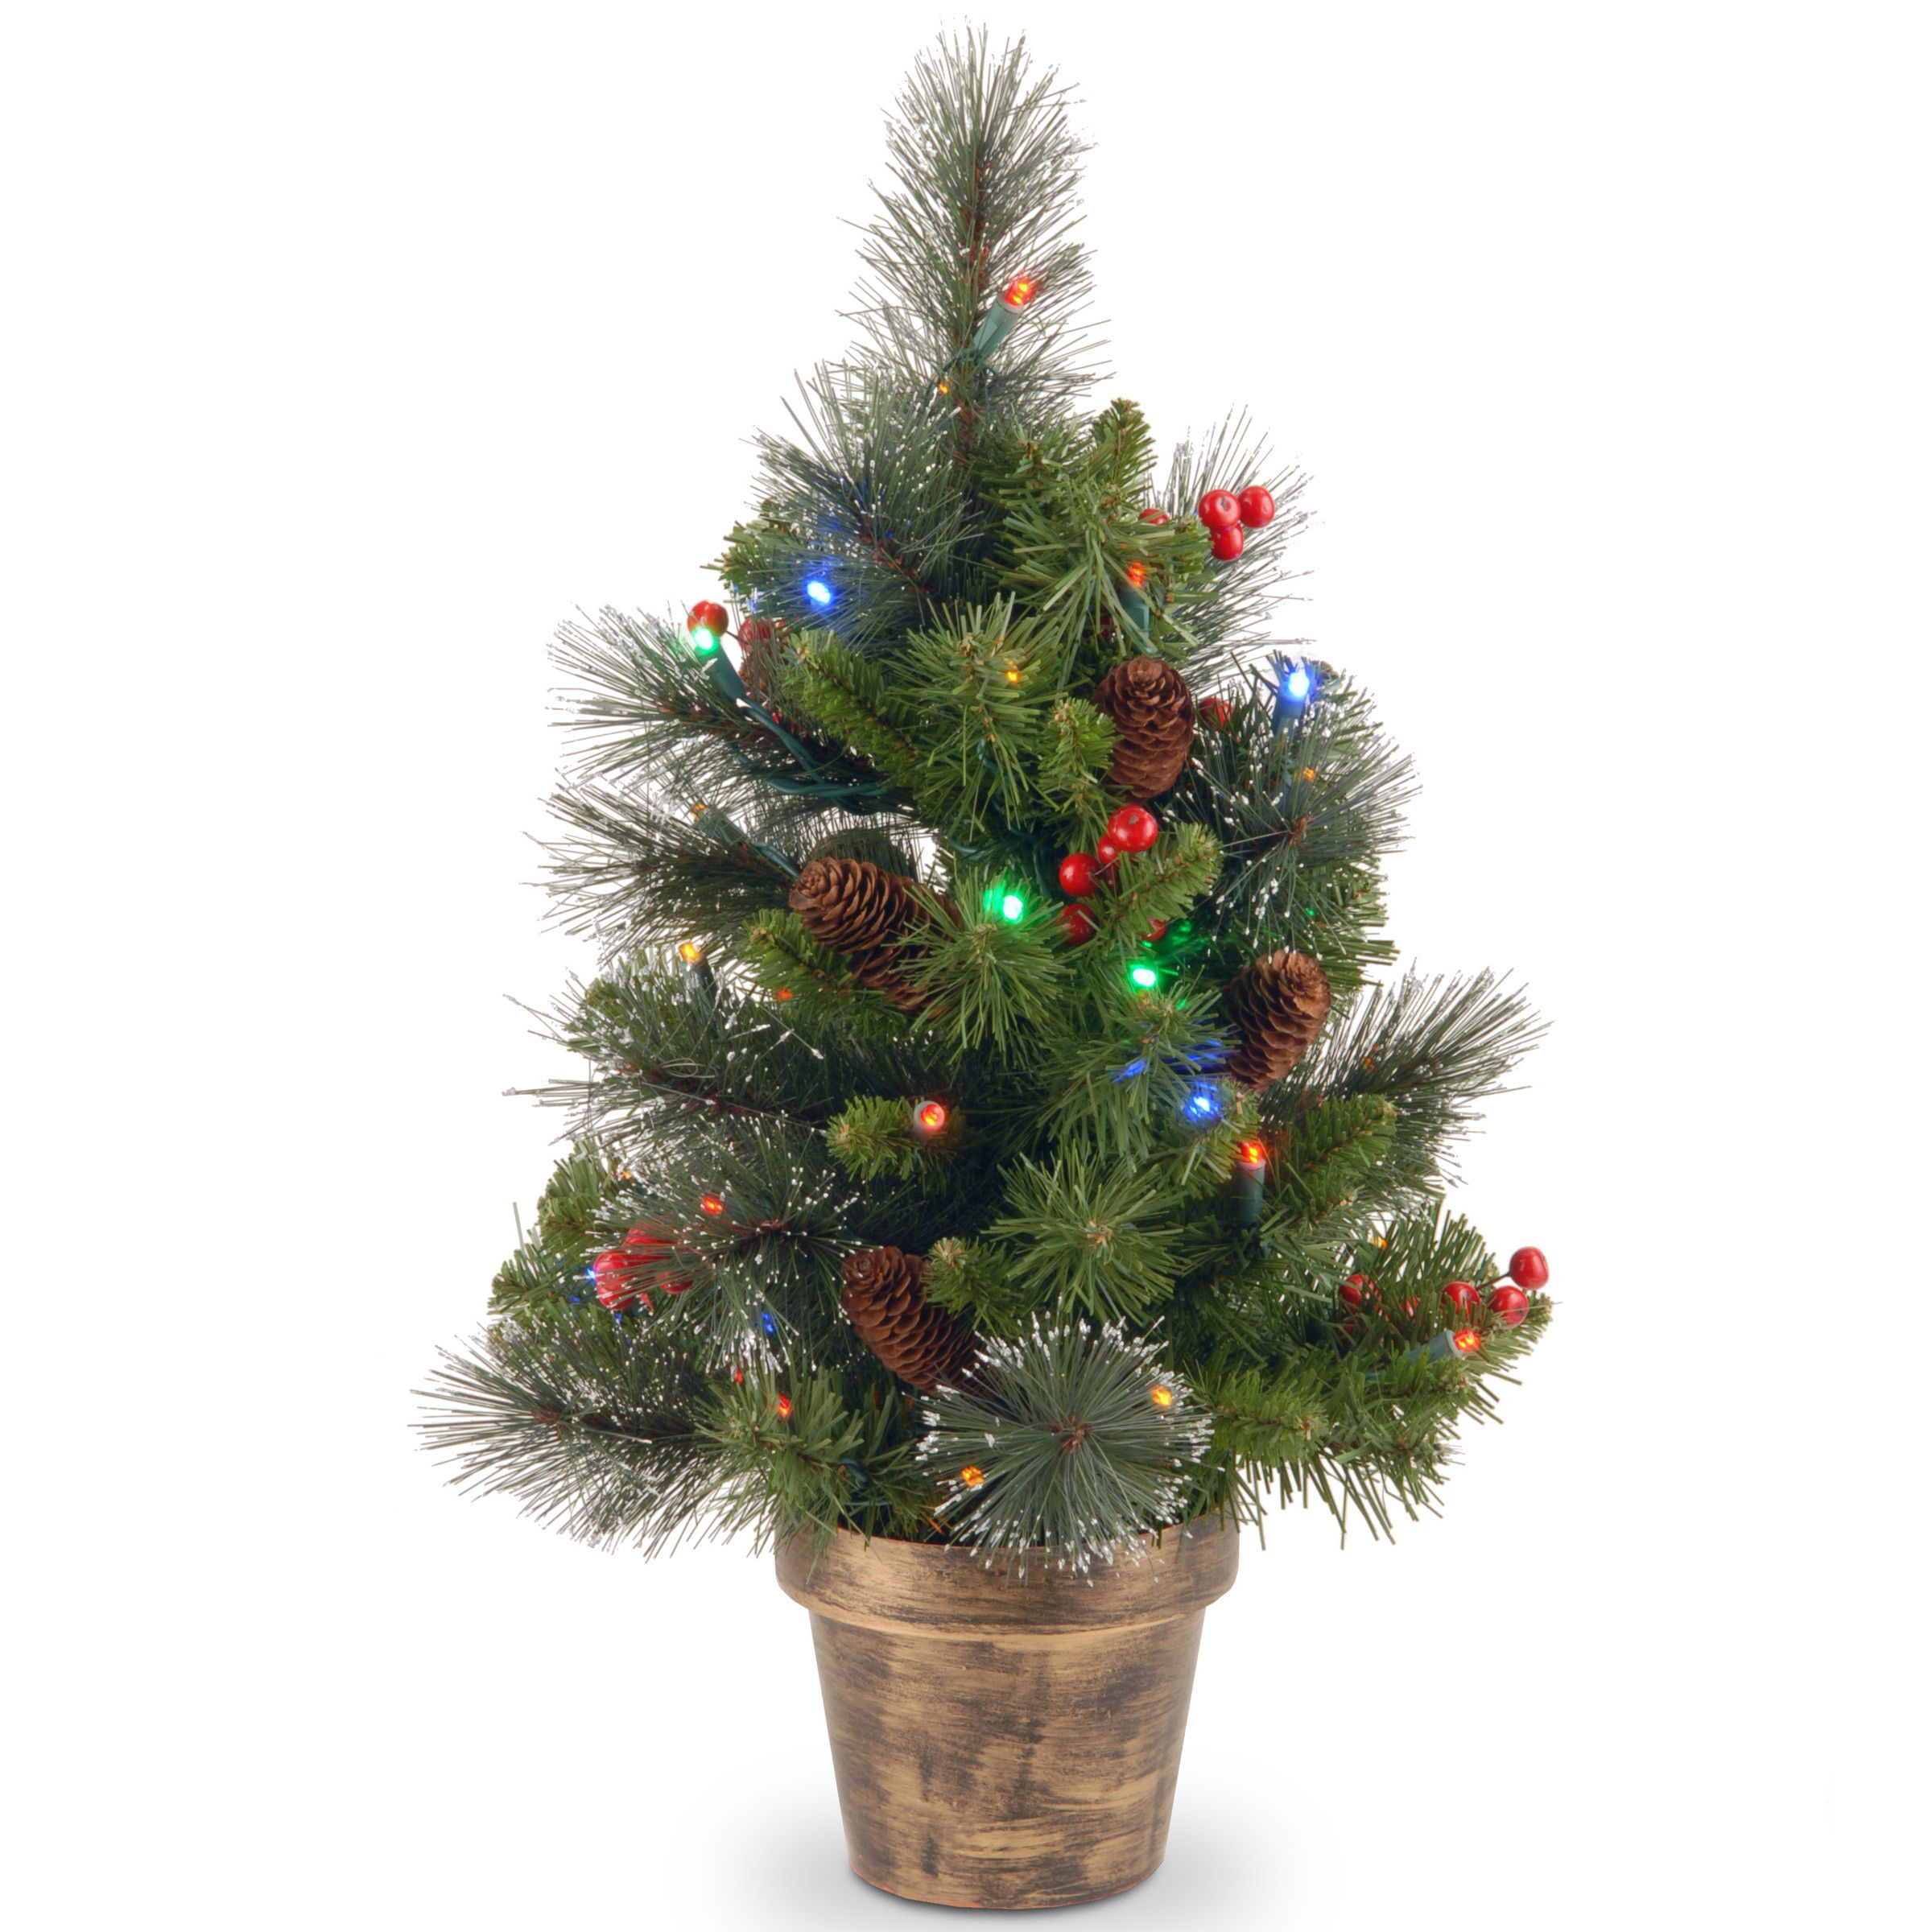 Crestwood small artificial christmas tree with plastic bronze pot -